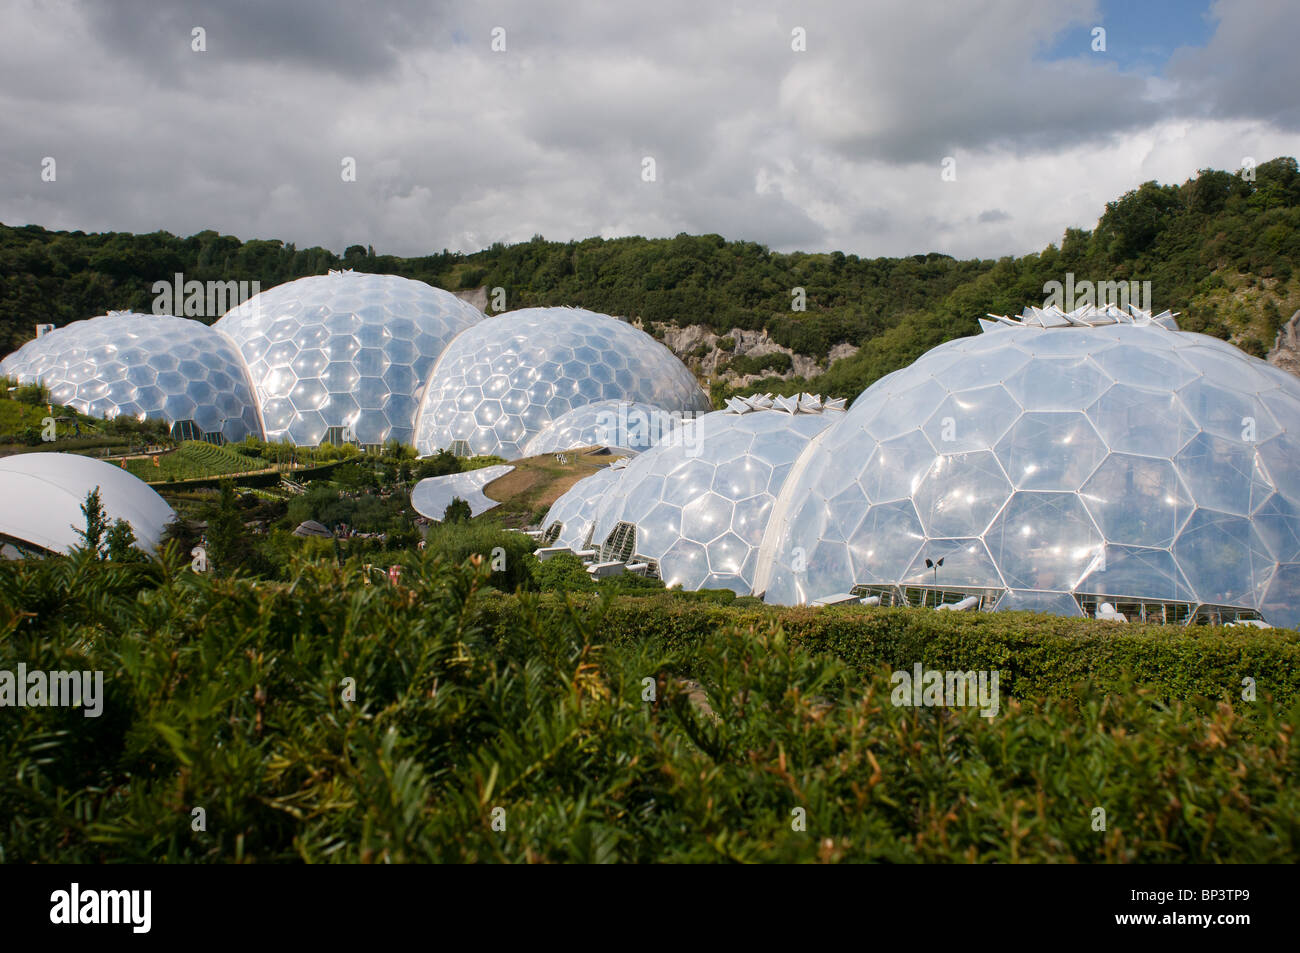 External view of the Tropical and Mediterranean biomes at The Eden Project, near St Austell, Cornwall, UK - Stock Image